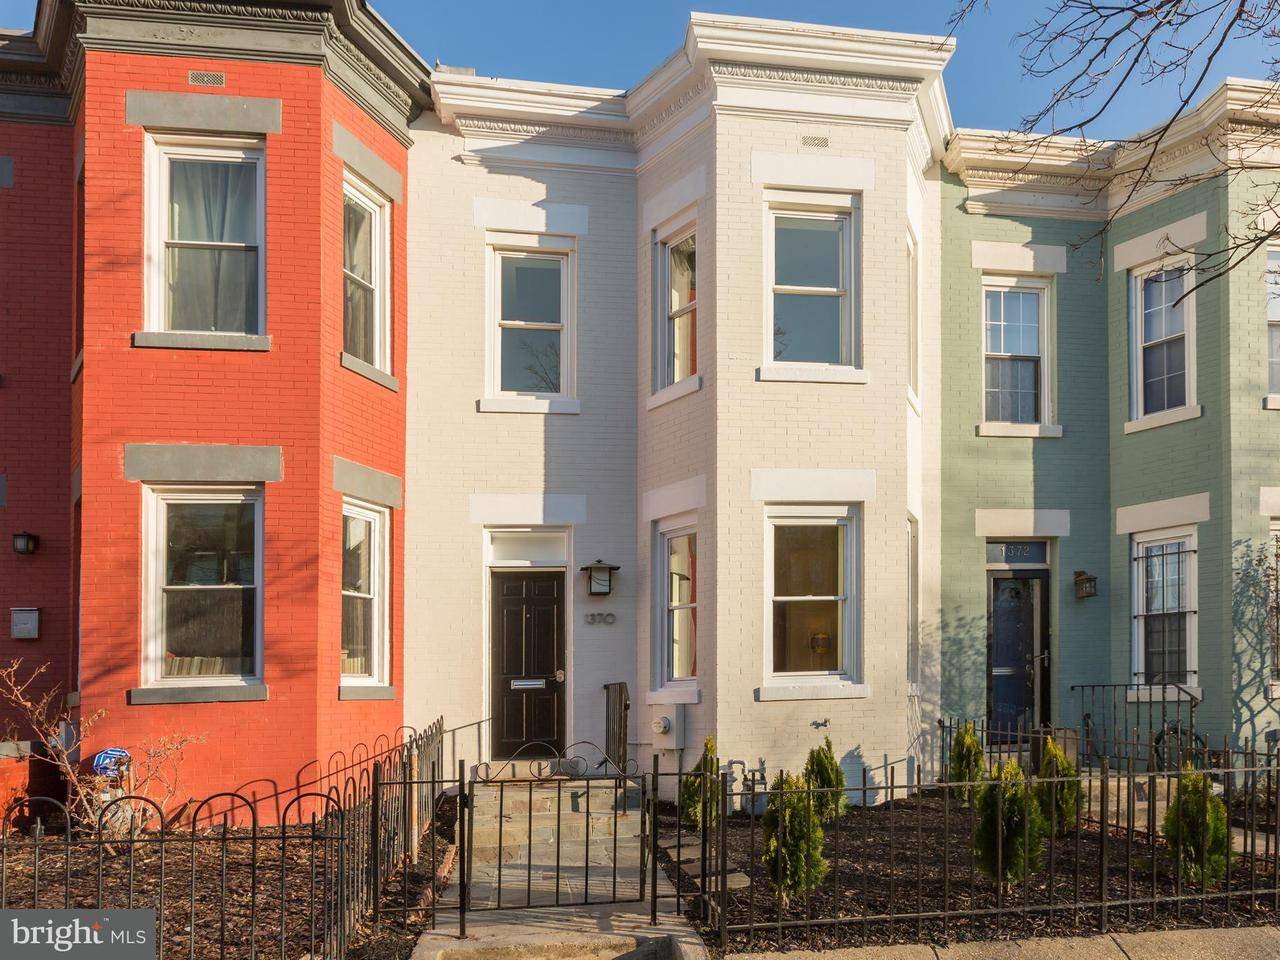 Single Family for Sale at 1370 E St NE Washington, District Of Columbia 20002 United States